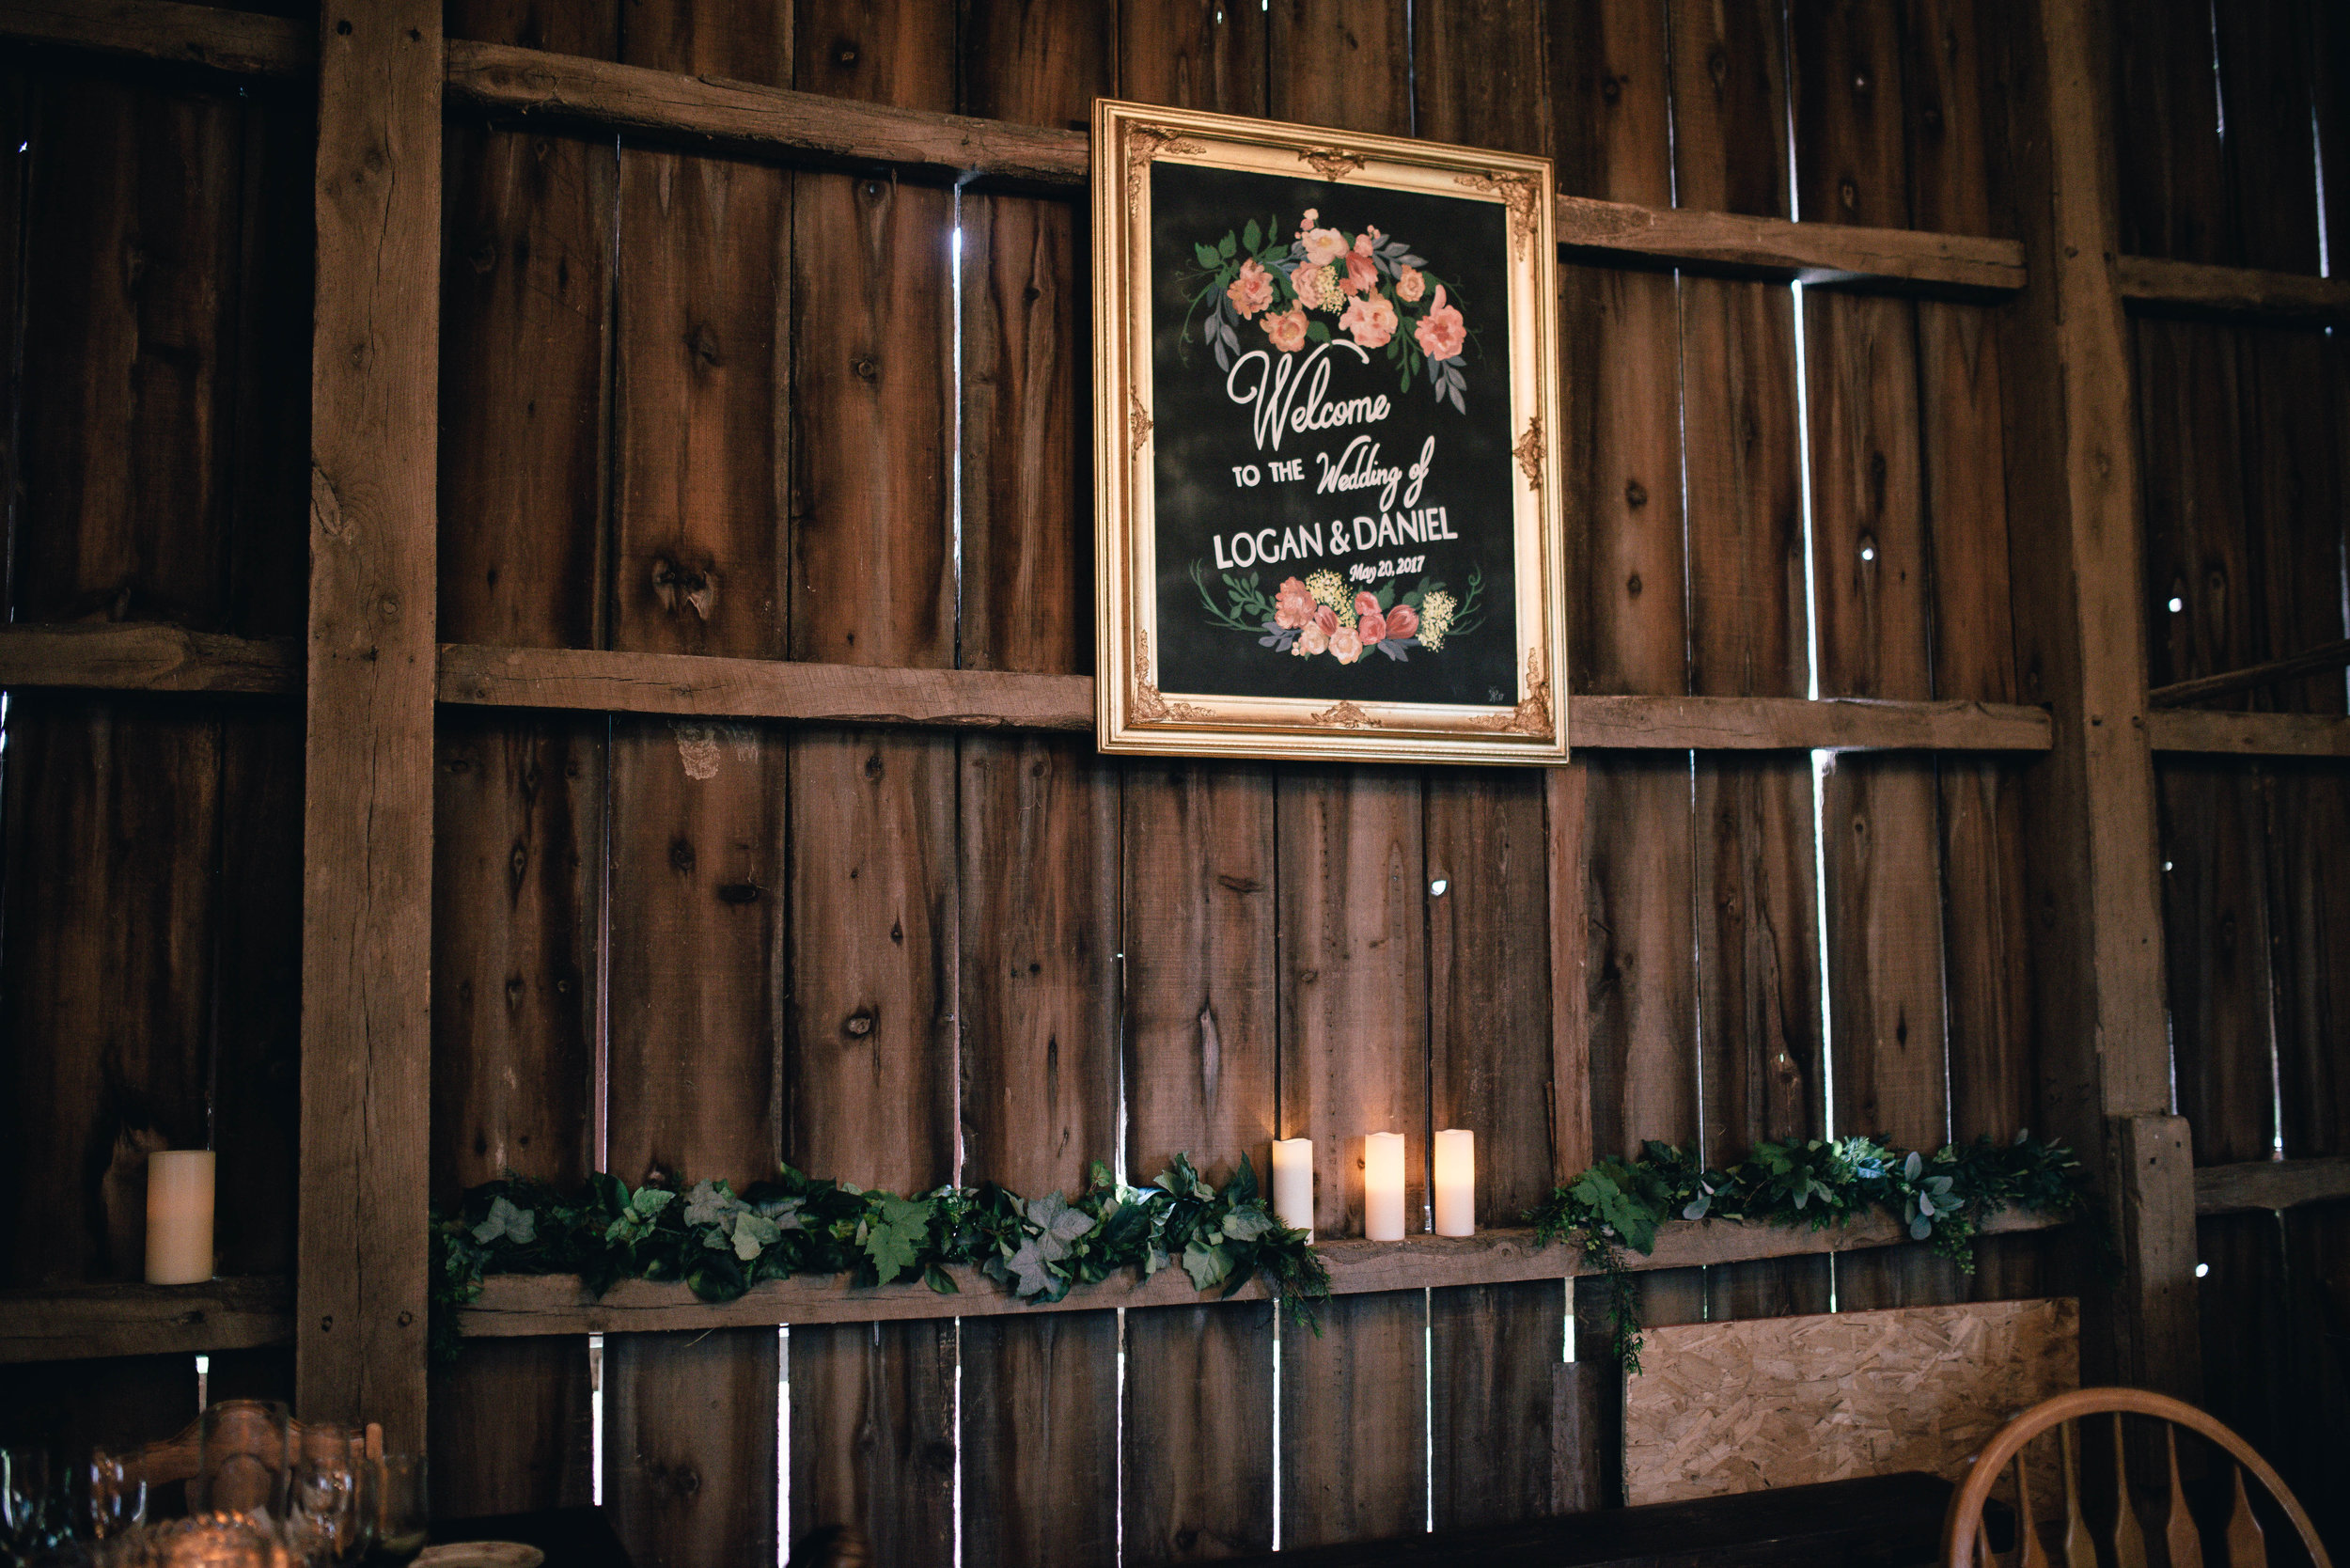 Annnnnd now *drumroll* to see inside that beautiful barn all the incredible time and effort Logan's family + friends poured into making each detail so incredibly stunning and truly magical!